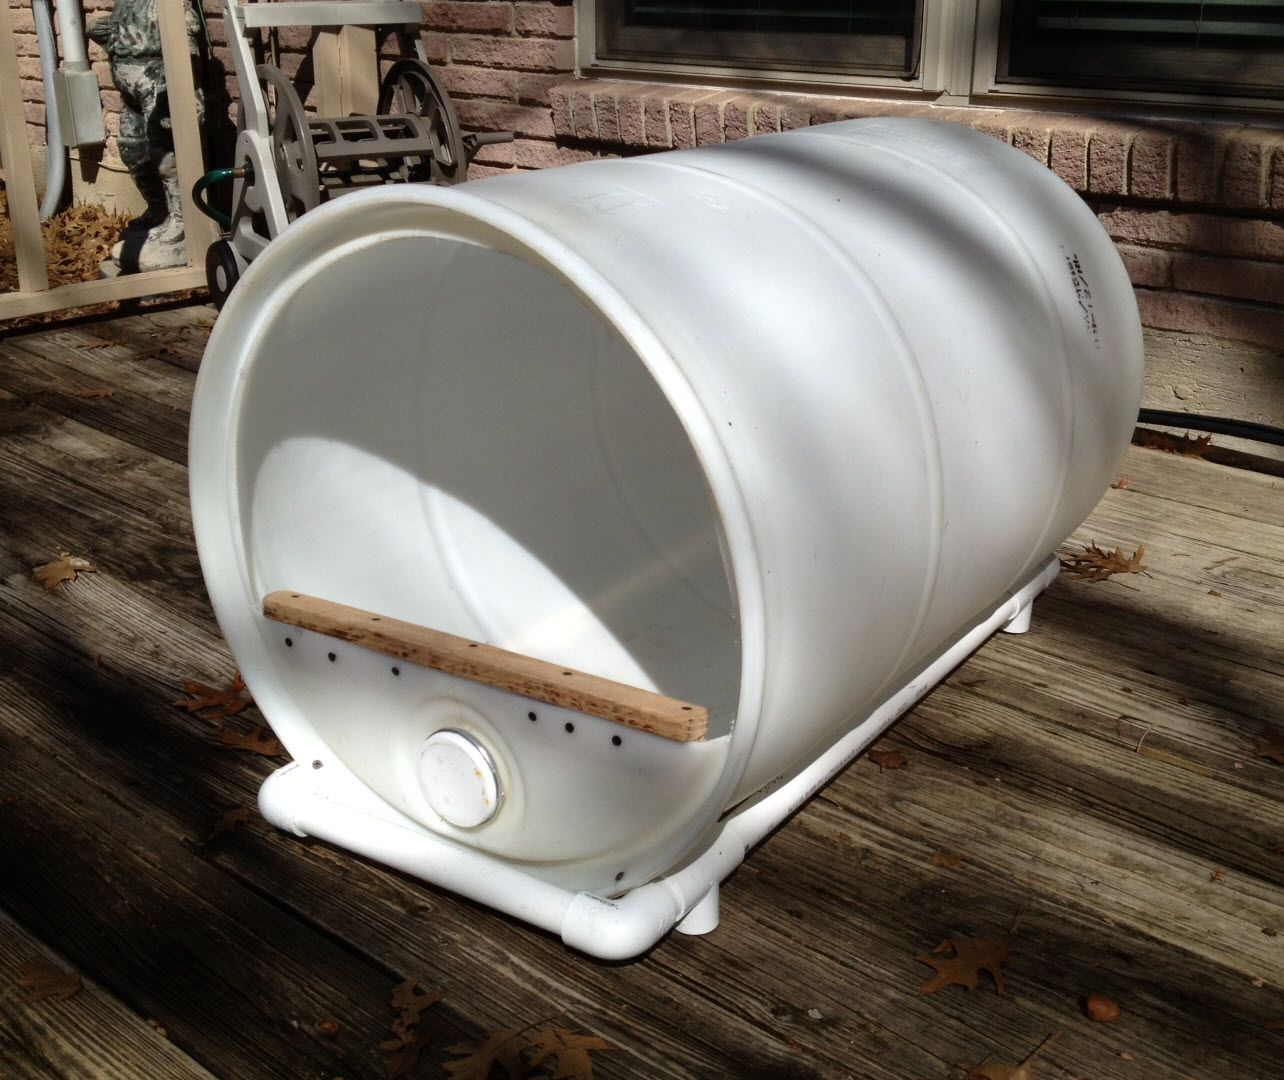 Plastic Barrel Dog House Dog Kennel Designs Barrel Dog House